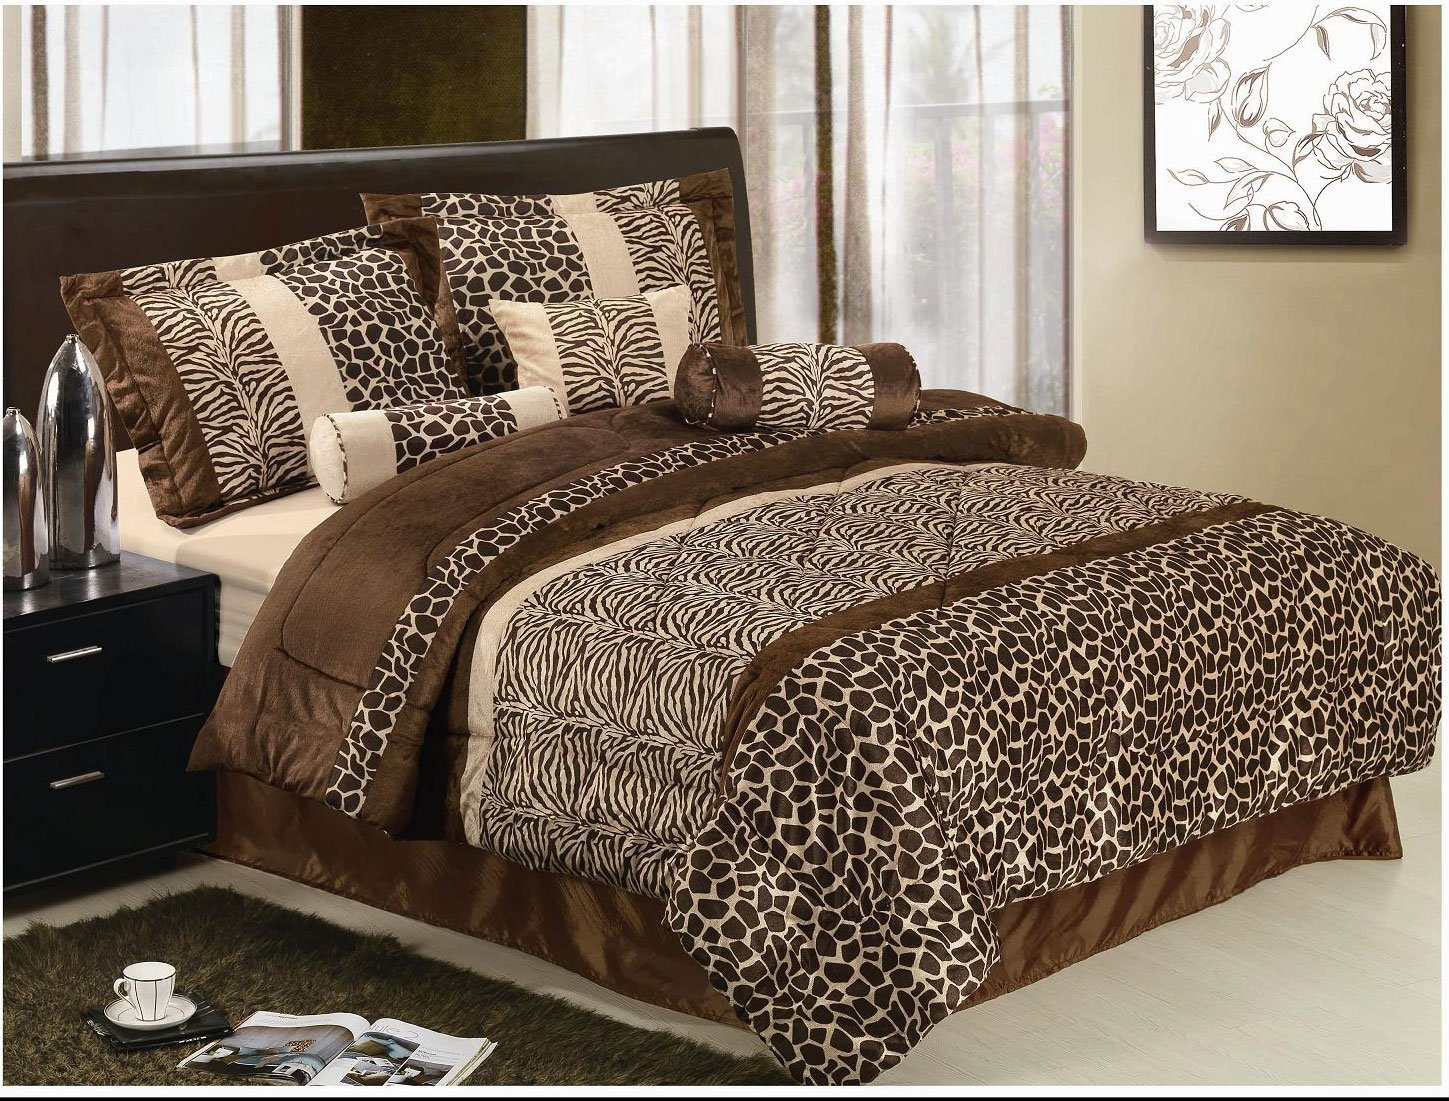 Fashionable Bedding Sets For Your Sweet Dream